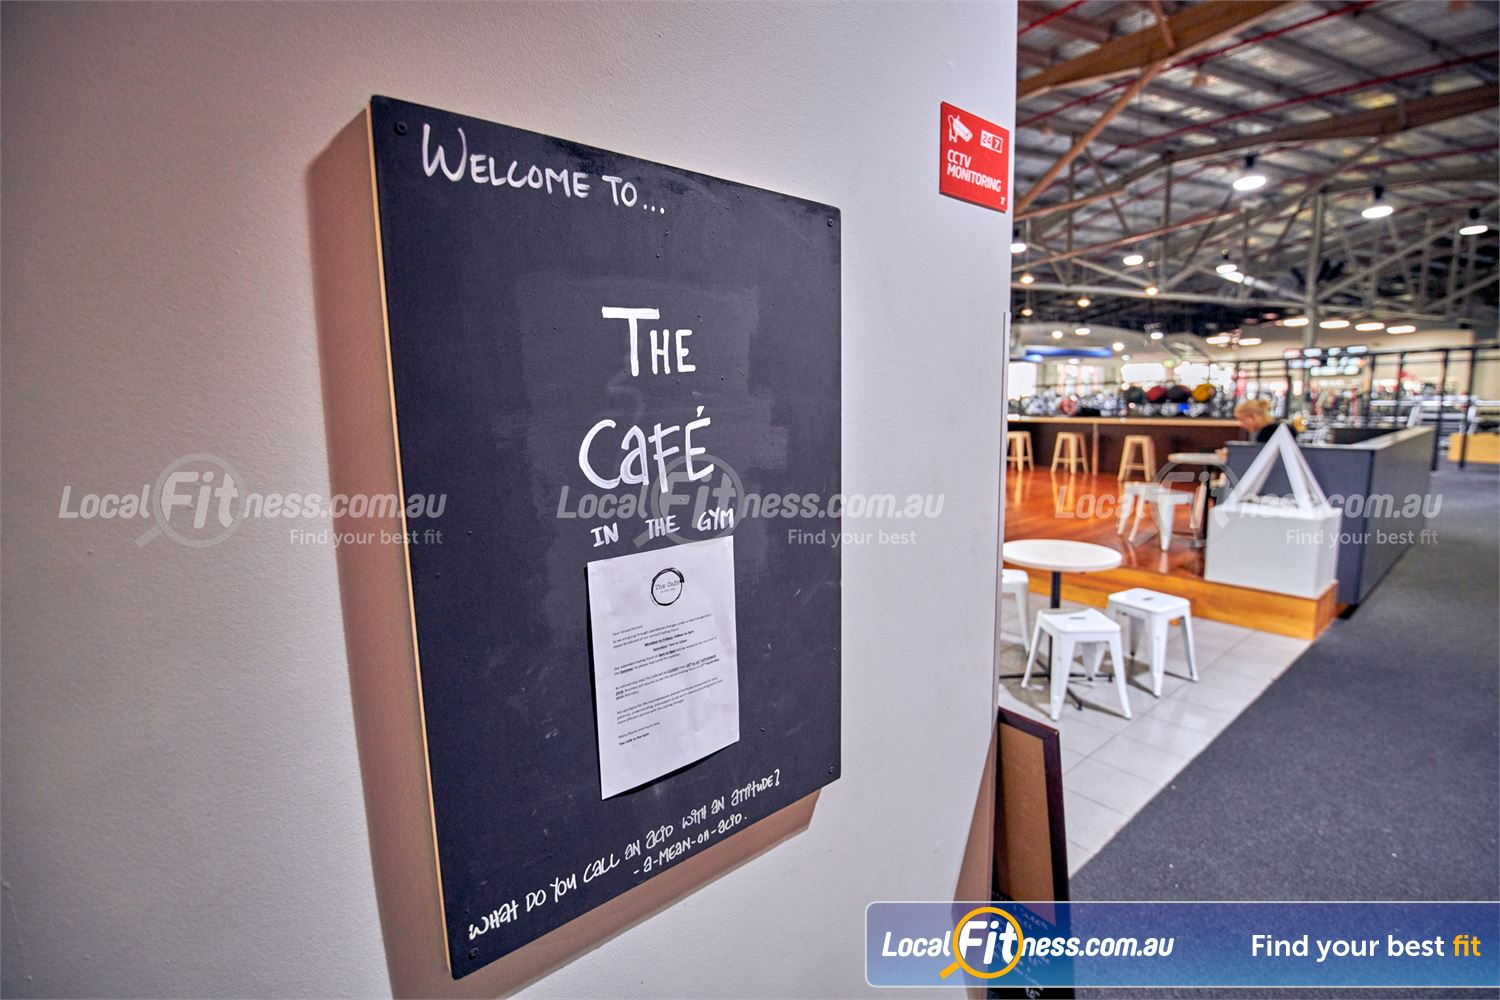 Fitness First Platinum Near Toorak On-site Cafe The Cafe at Richmond Fitness First.